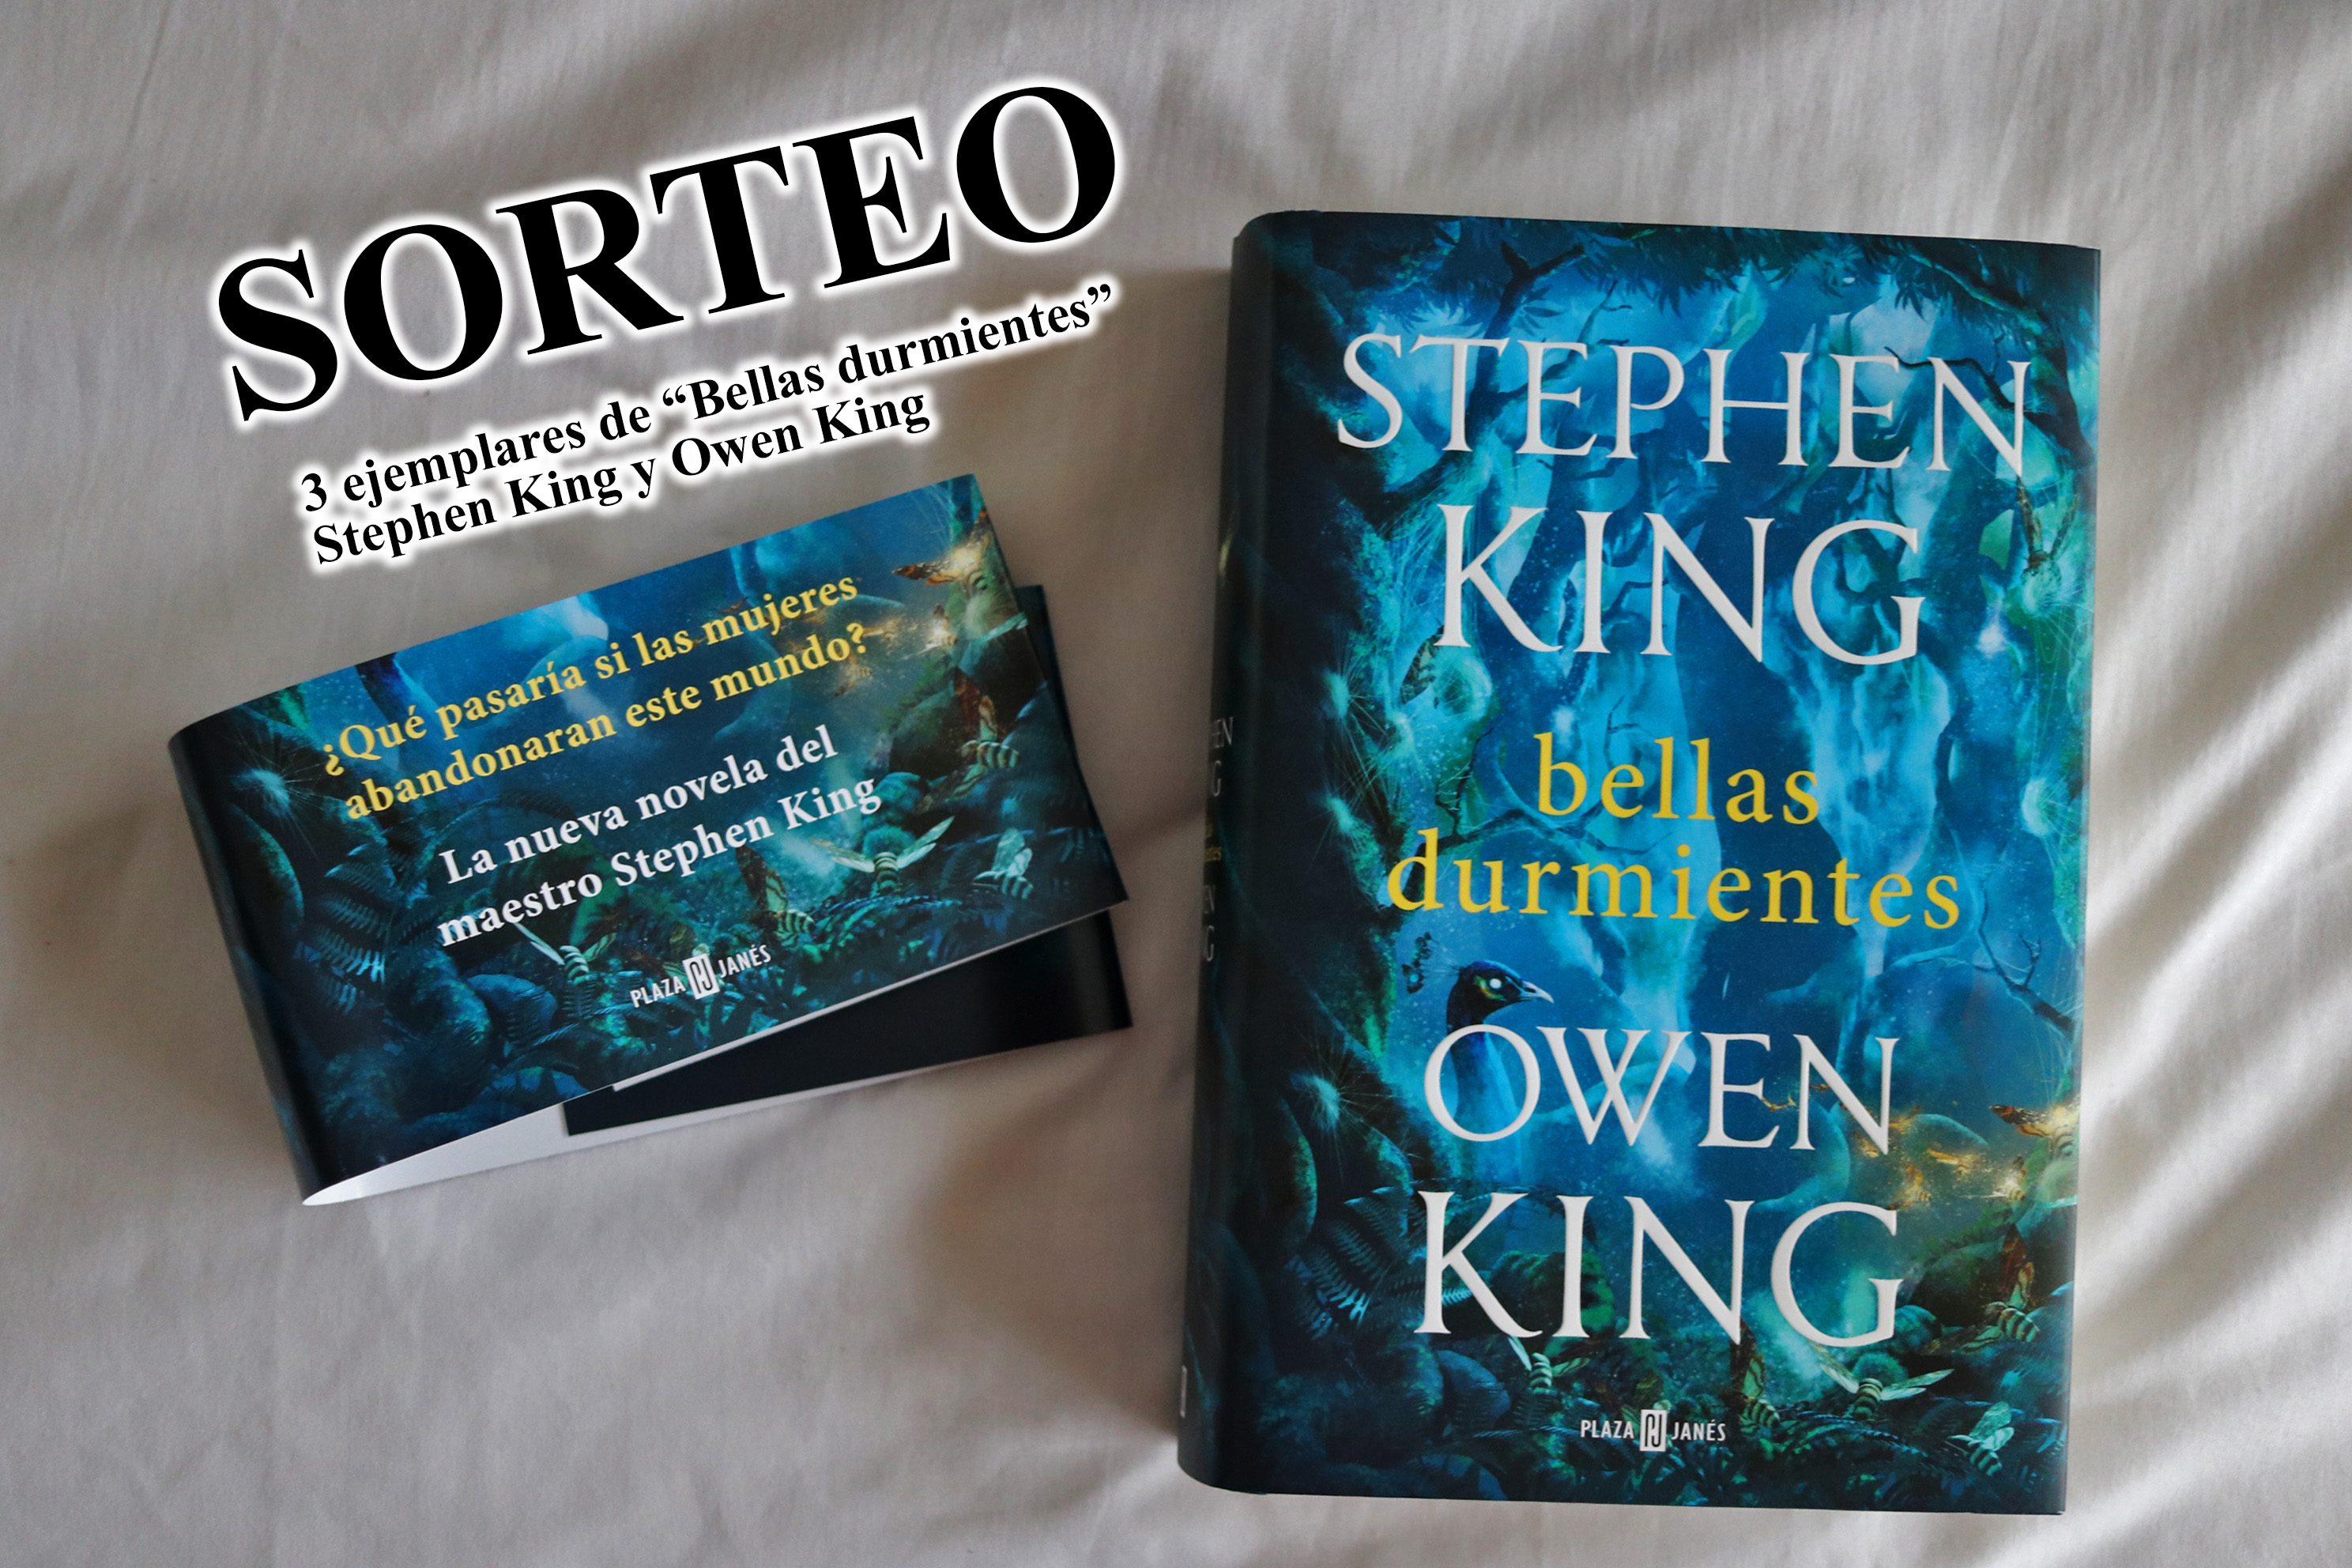 El Ultimo Libro De Stephen King Sorteo Bellas Durmientes De Stephen King Y Owen King